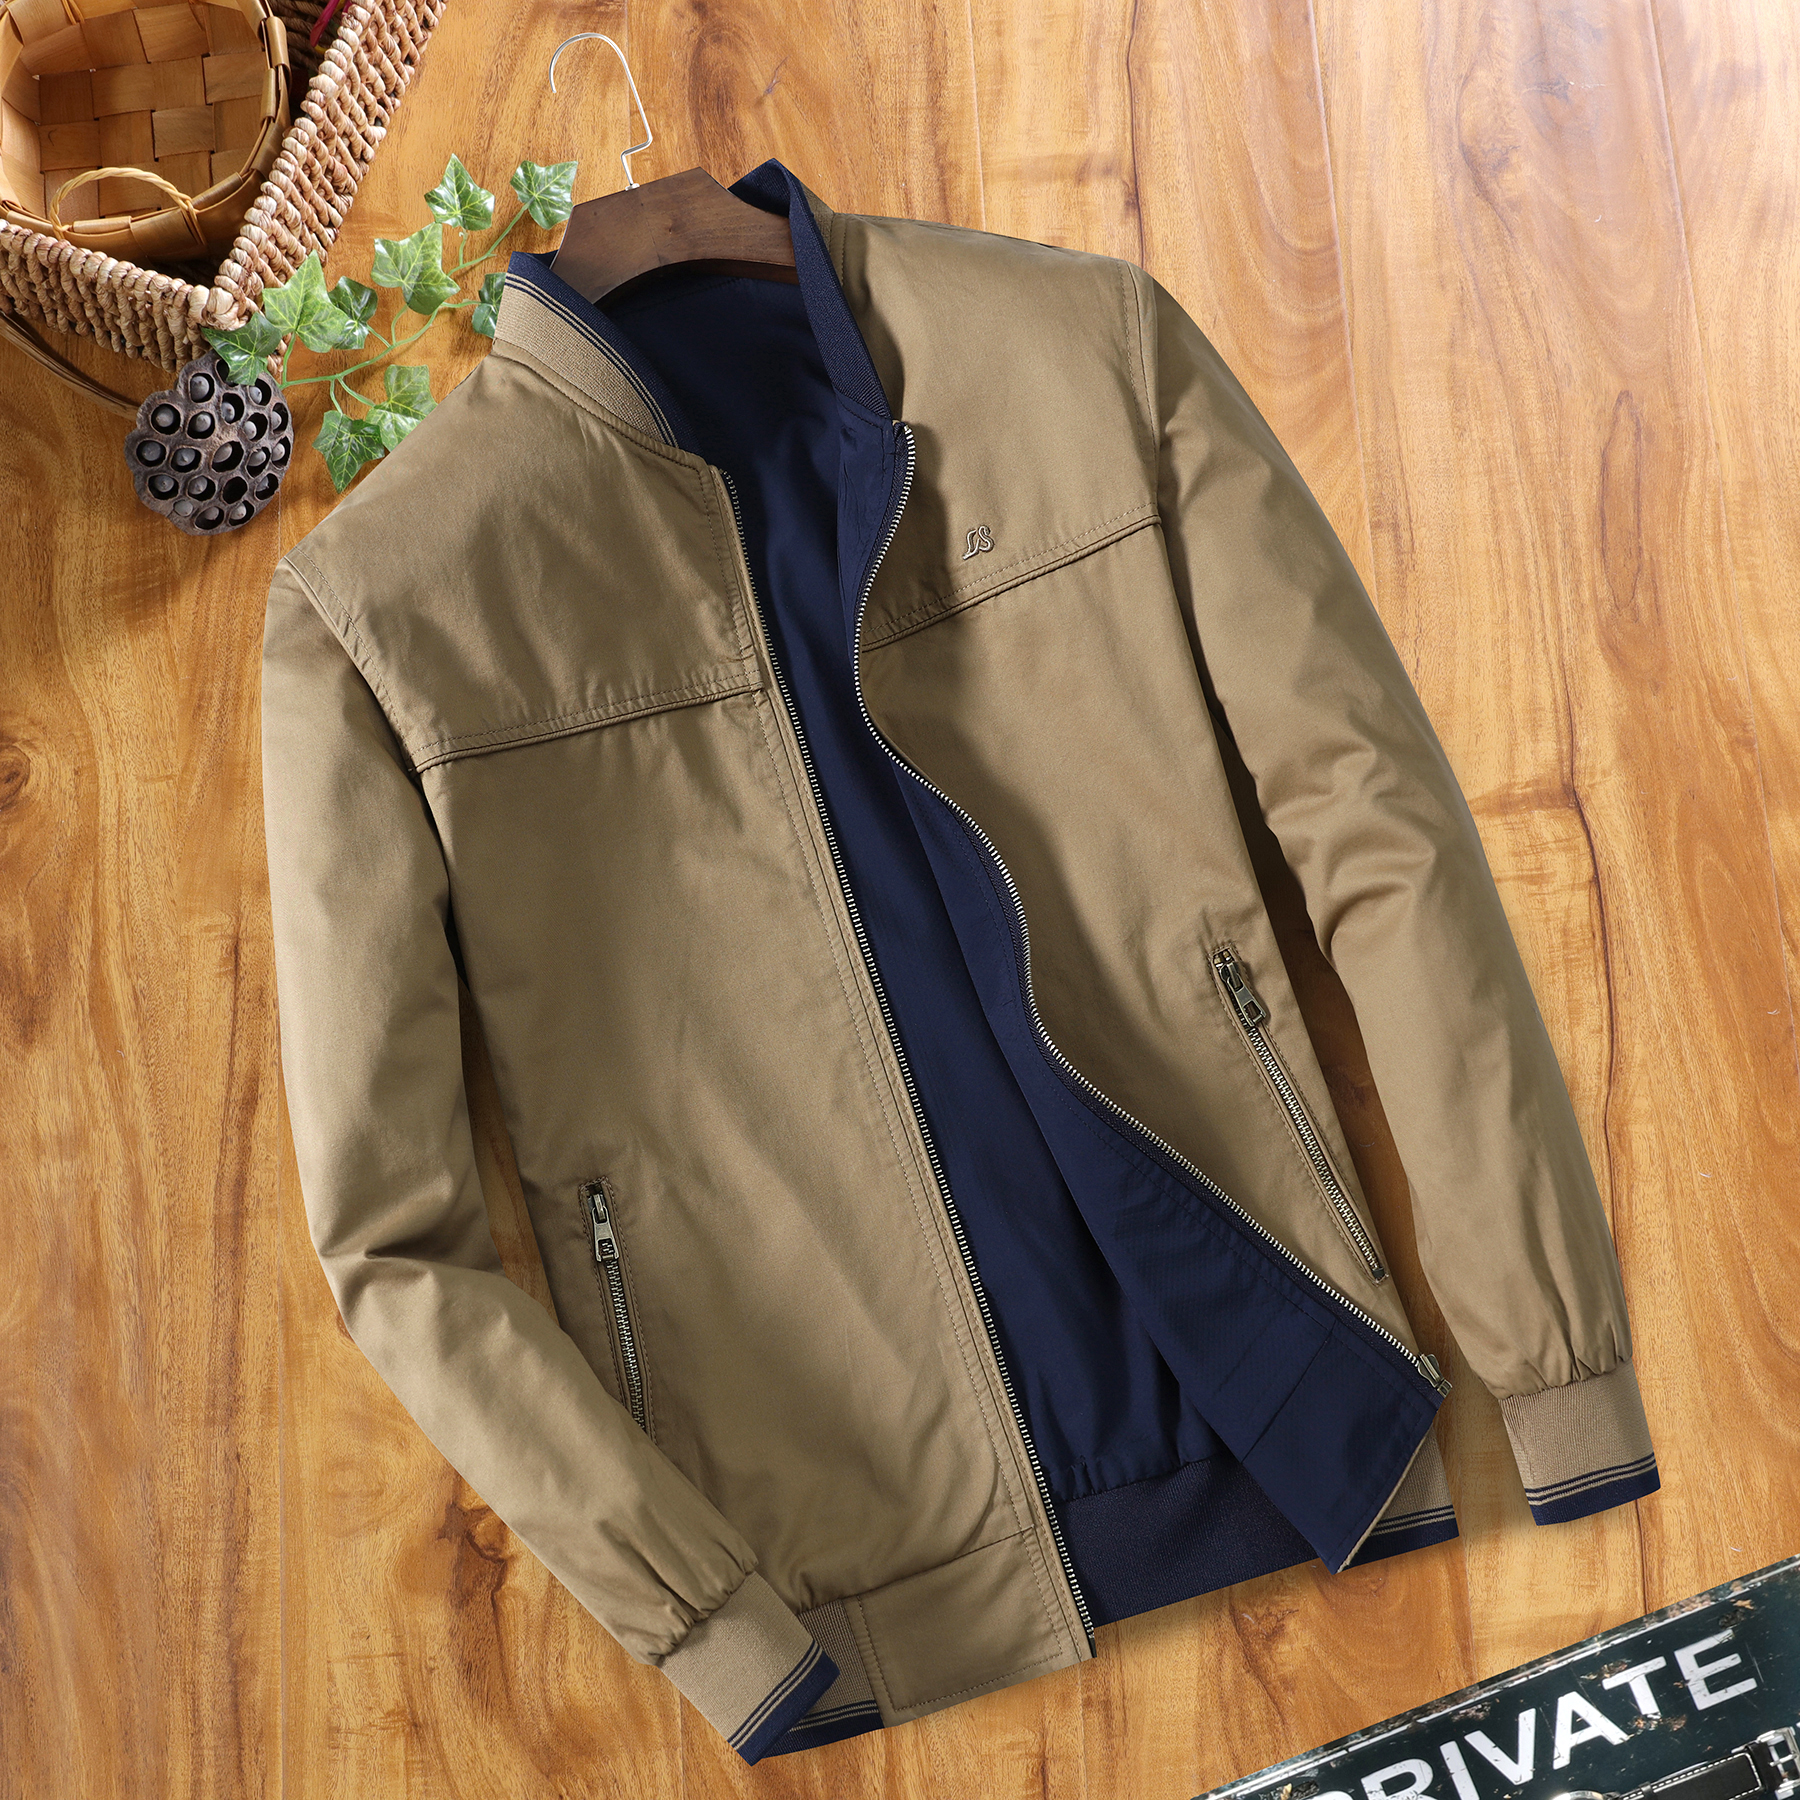 Cheap Wholesale 2019 New Autumn Winter Hot Selling Men's Fashion  Casual  Work Wear Nice Jacket MC80